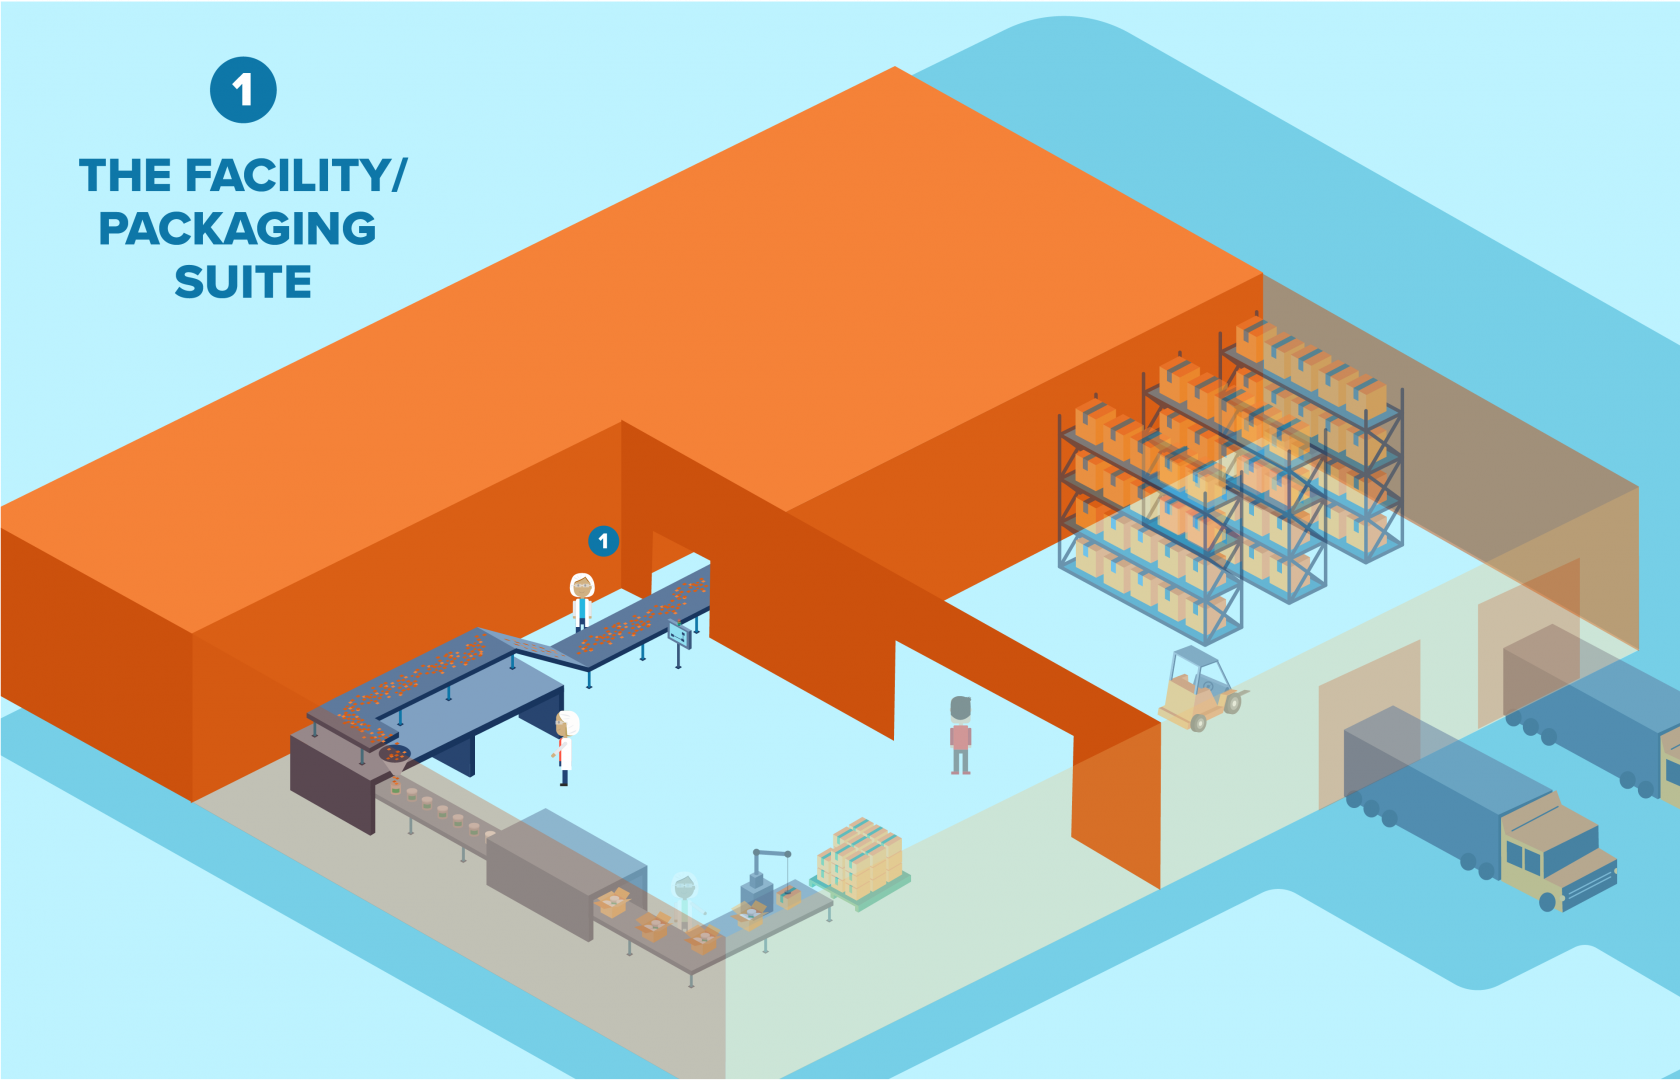 Packaging suite design within a food facility